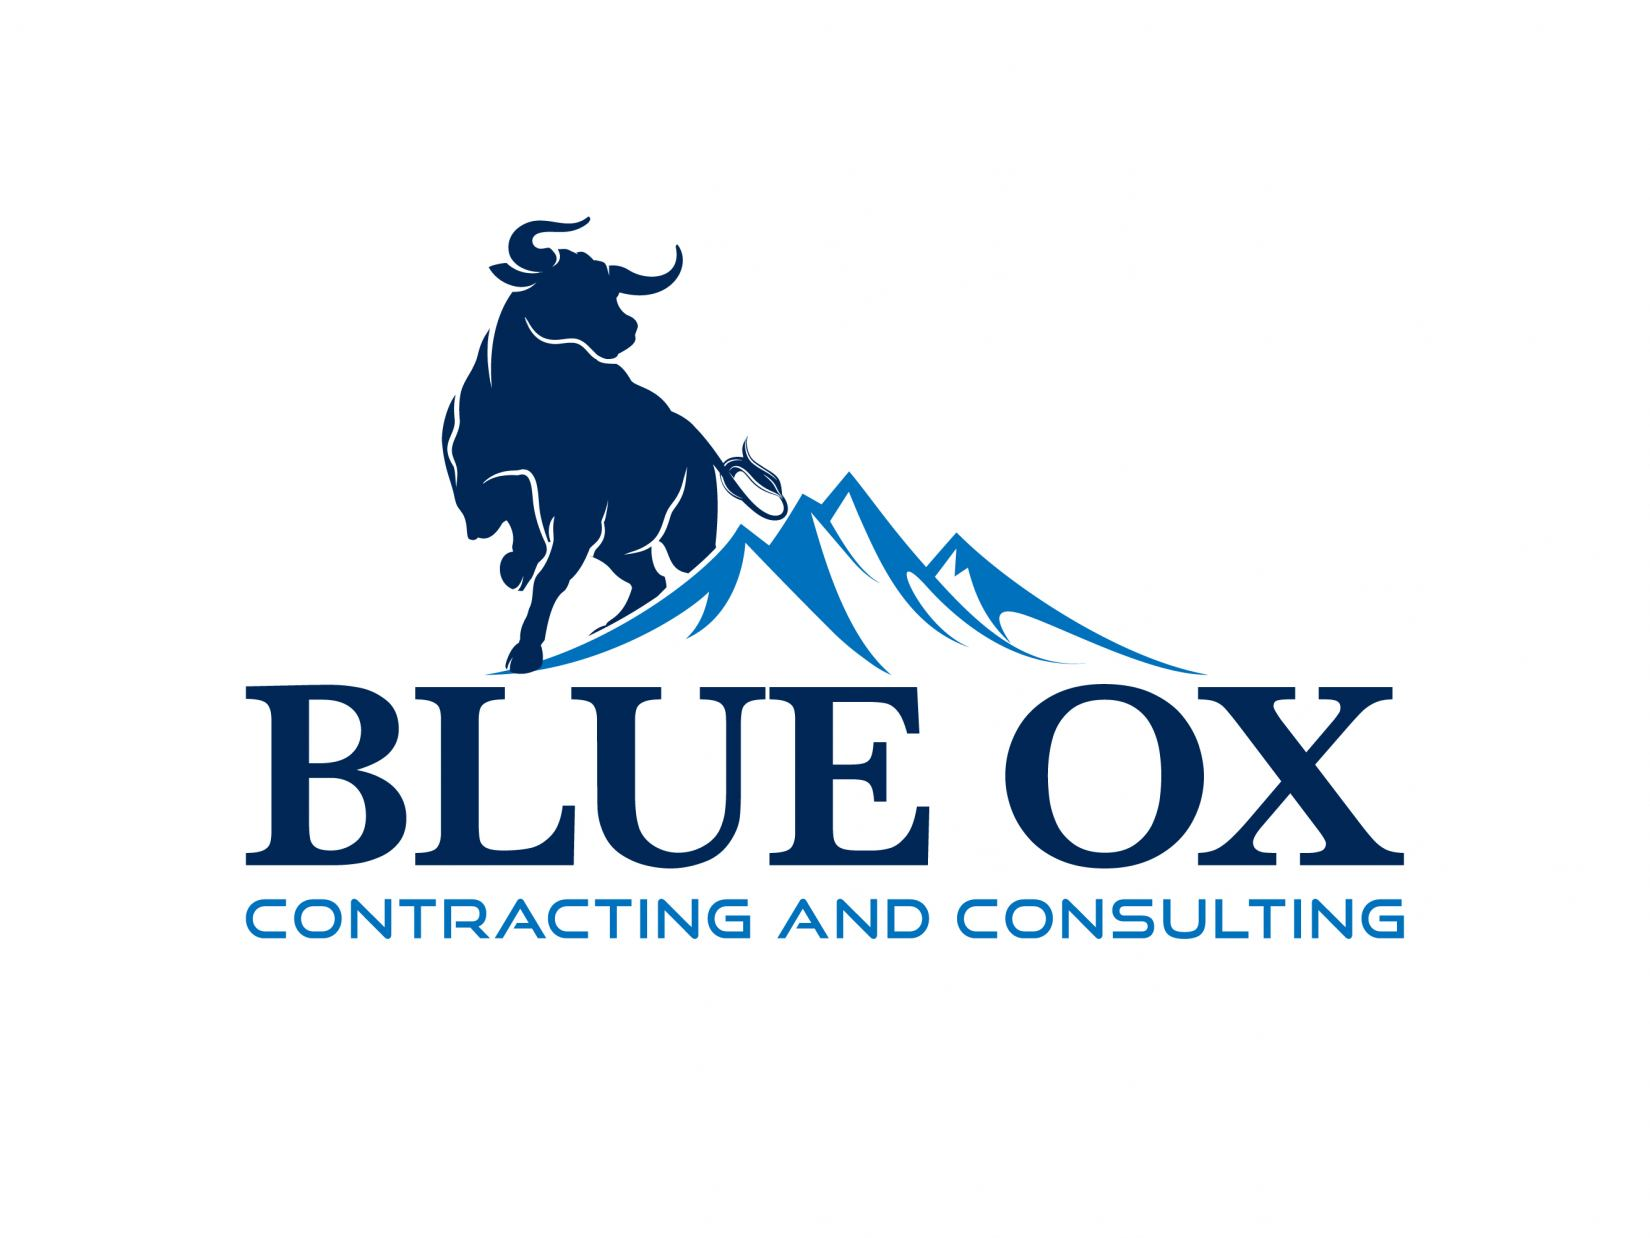 Blue Ox Contracting and Consulting Logo